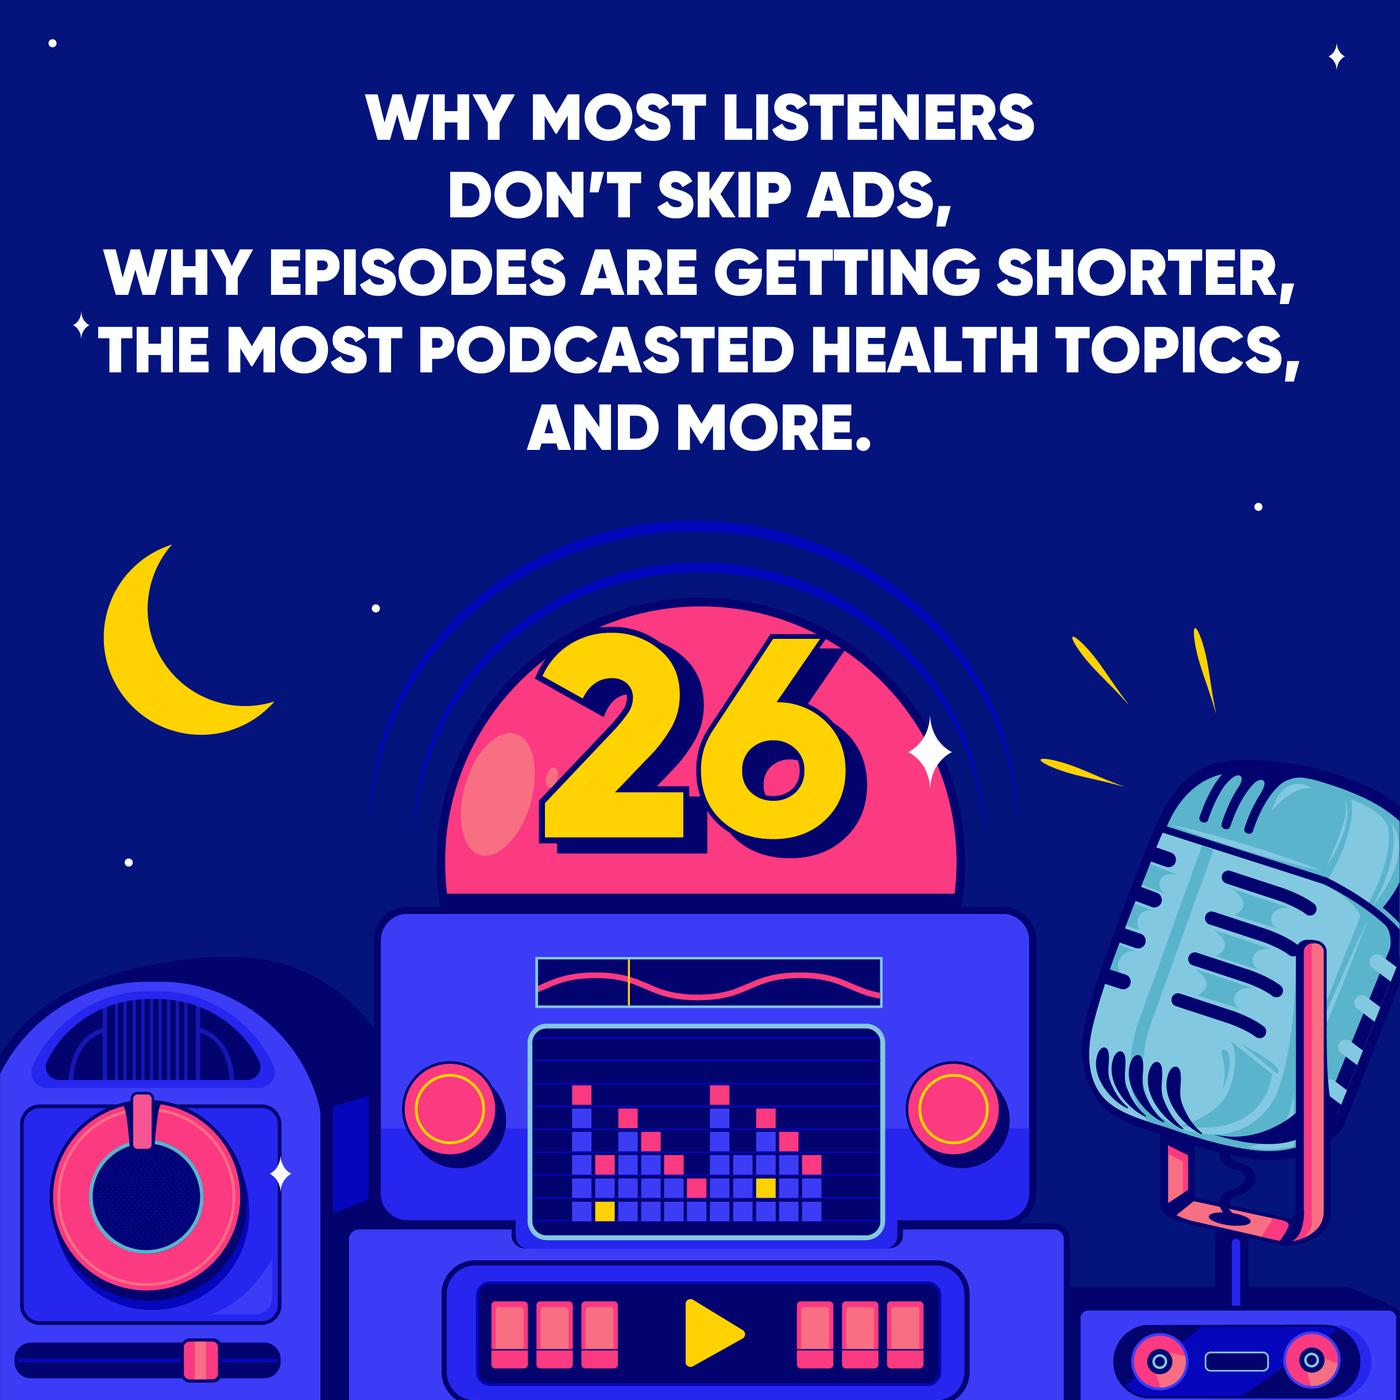 Why Most Listeners Don't Skip ads, why Episodes are Getting Shorter, the Most Podcasted Health Topics, and More.